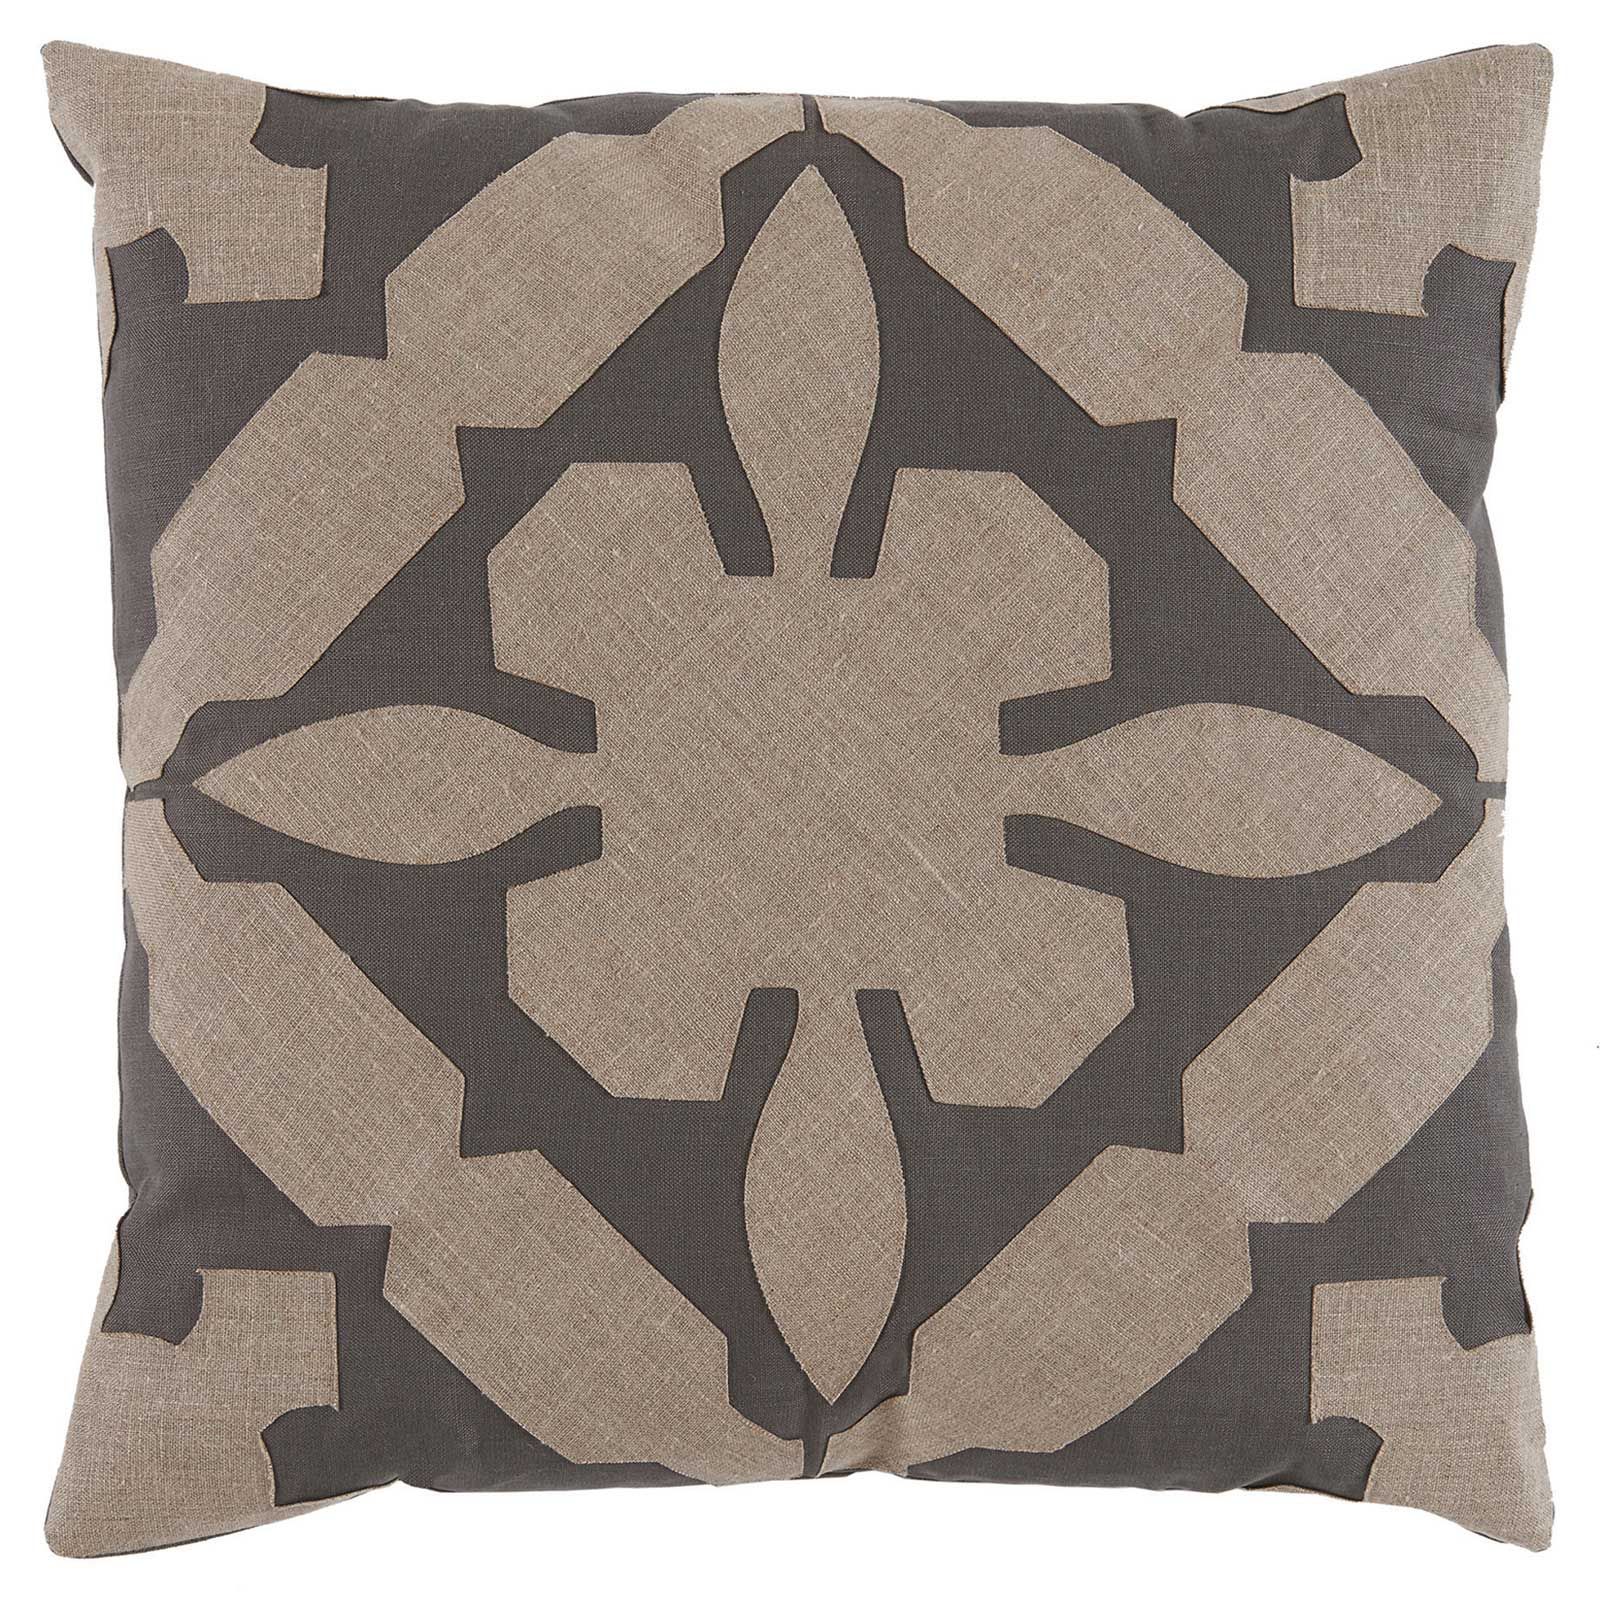 Pasha Modern Classic Applique Brown Linen Pillow - 22x22